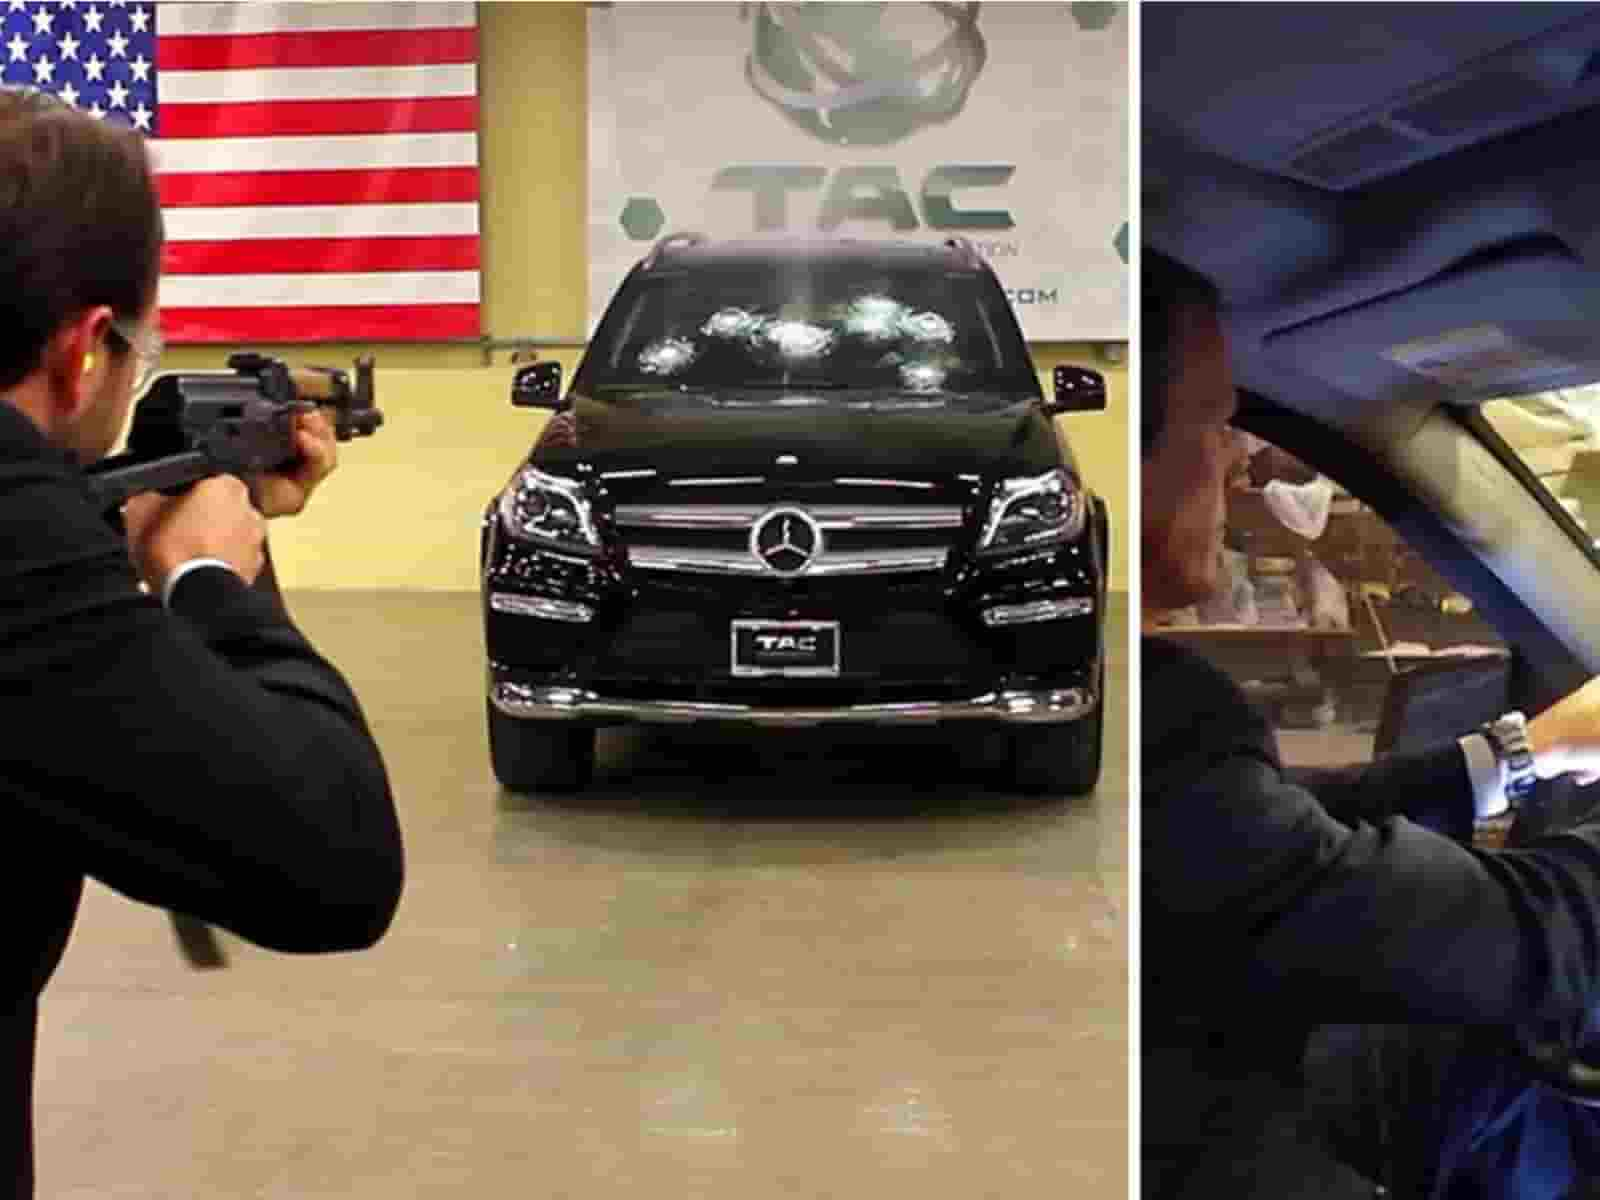 Ceo Of Mercedes Testing A Bulletproof Benz Car With Ak 47